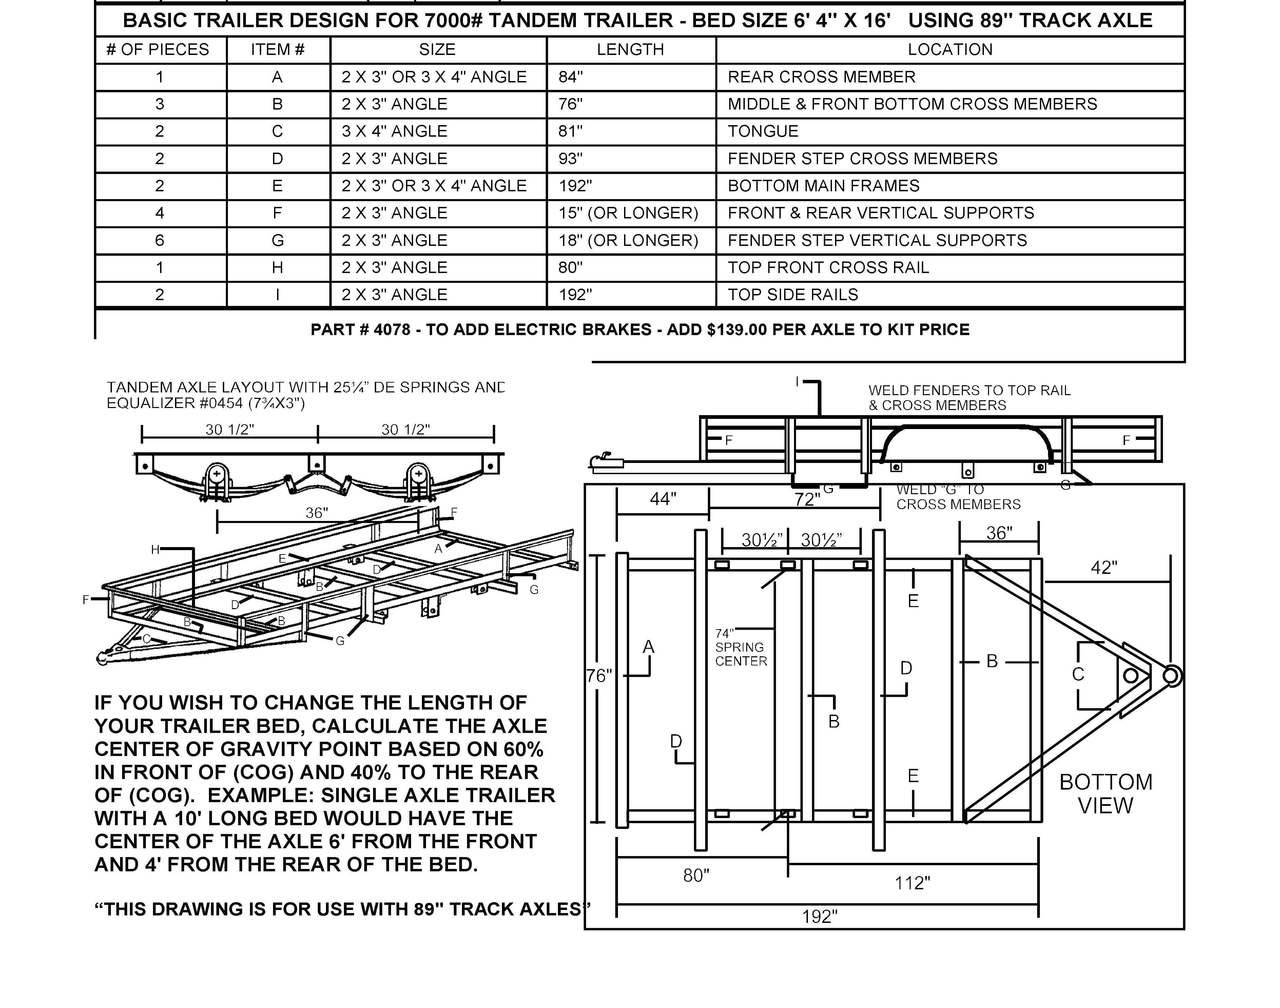 95 Champion Wiring Diagram Electrical Evinrude Build Your Own Utility Trailer With Trailers Tandem Rh Championtrailers Com